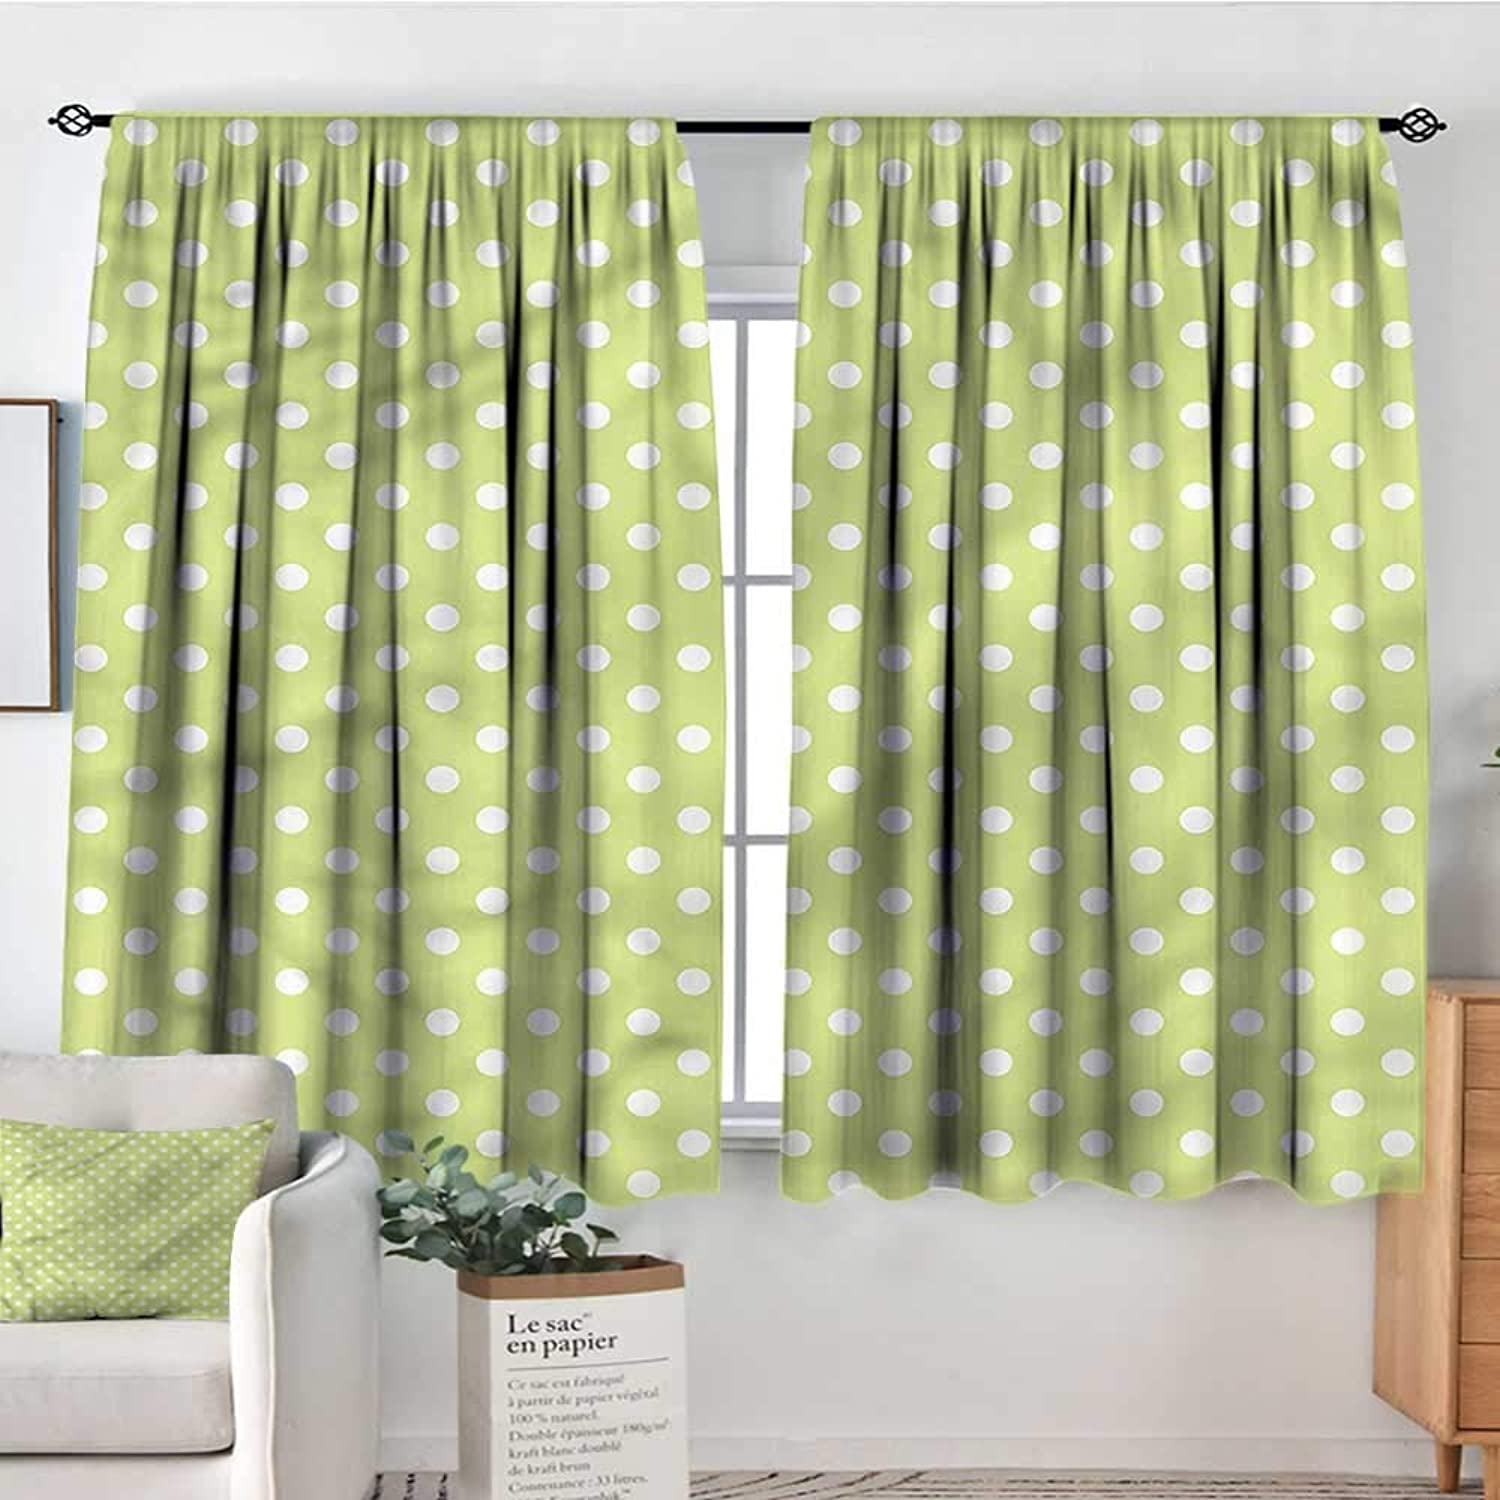 Familytaste Polka Dots,Rod Curtains 60s Simplistic Design 52 x63  Backout Curtains for Kids Iving Room